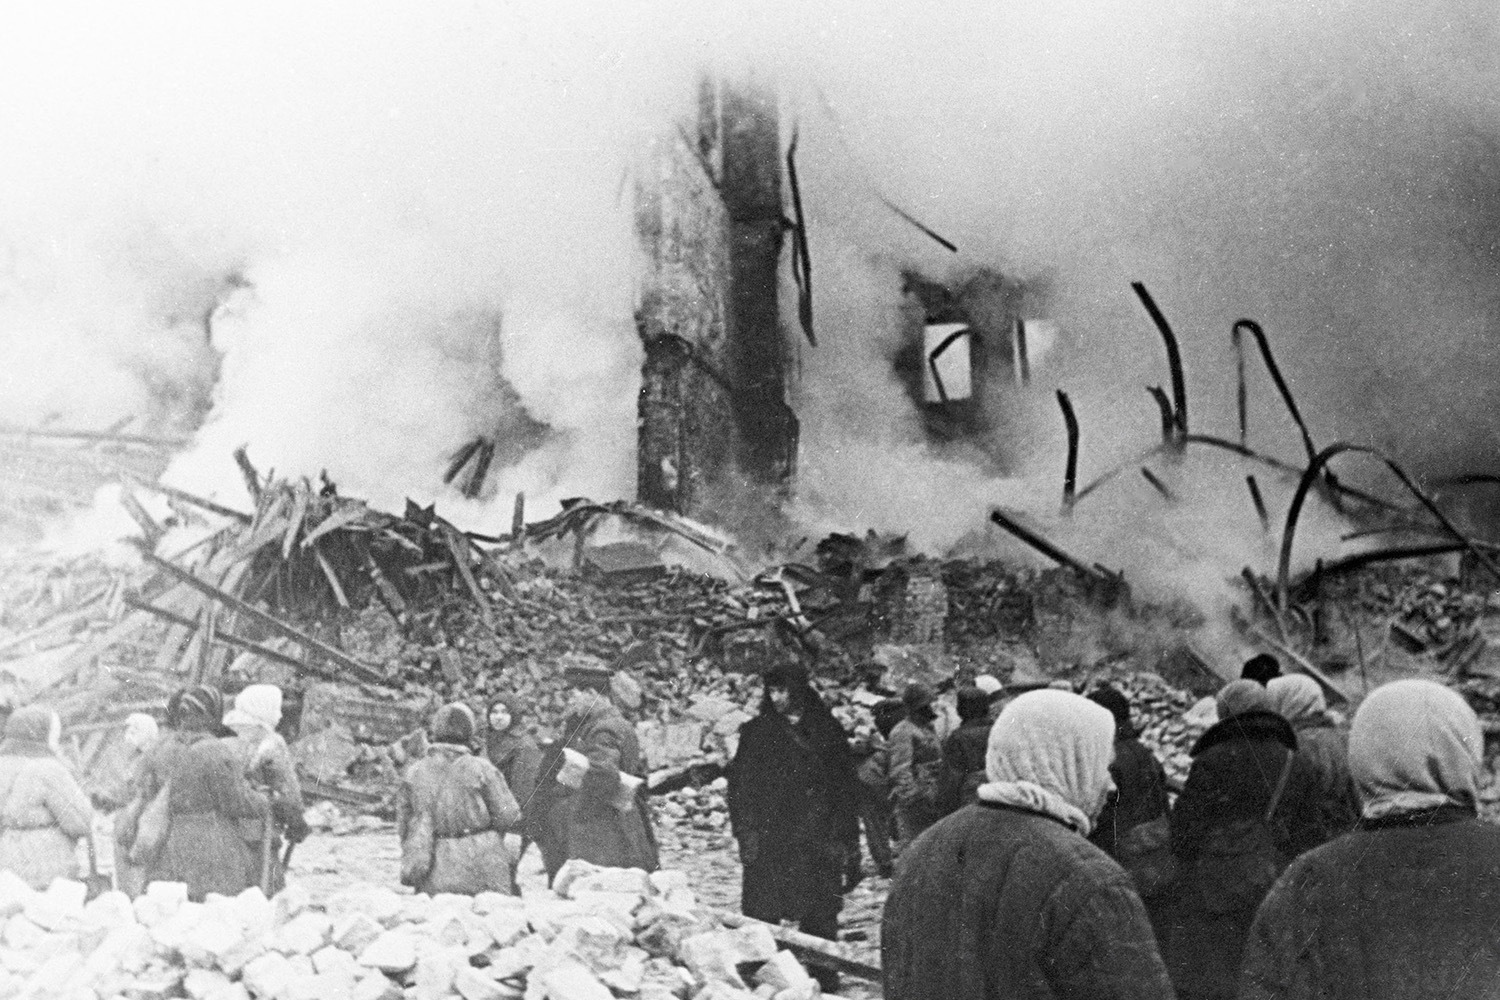 Residents during the Siege of Leningrad, c.1941.